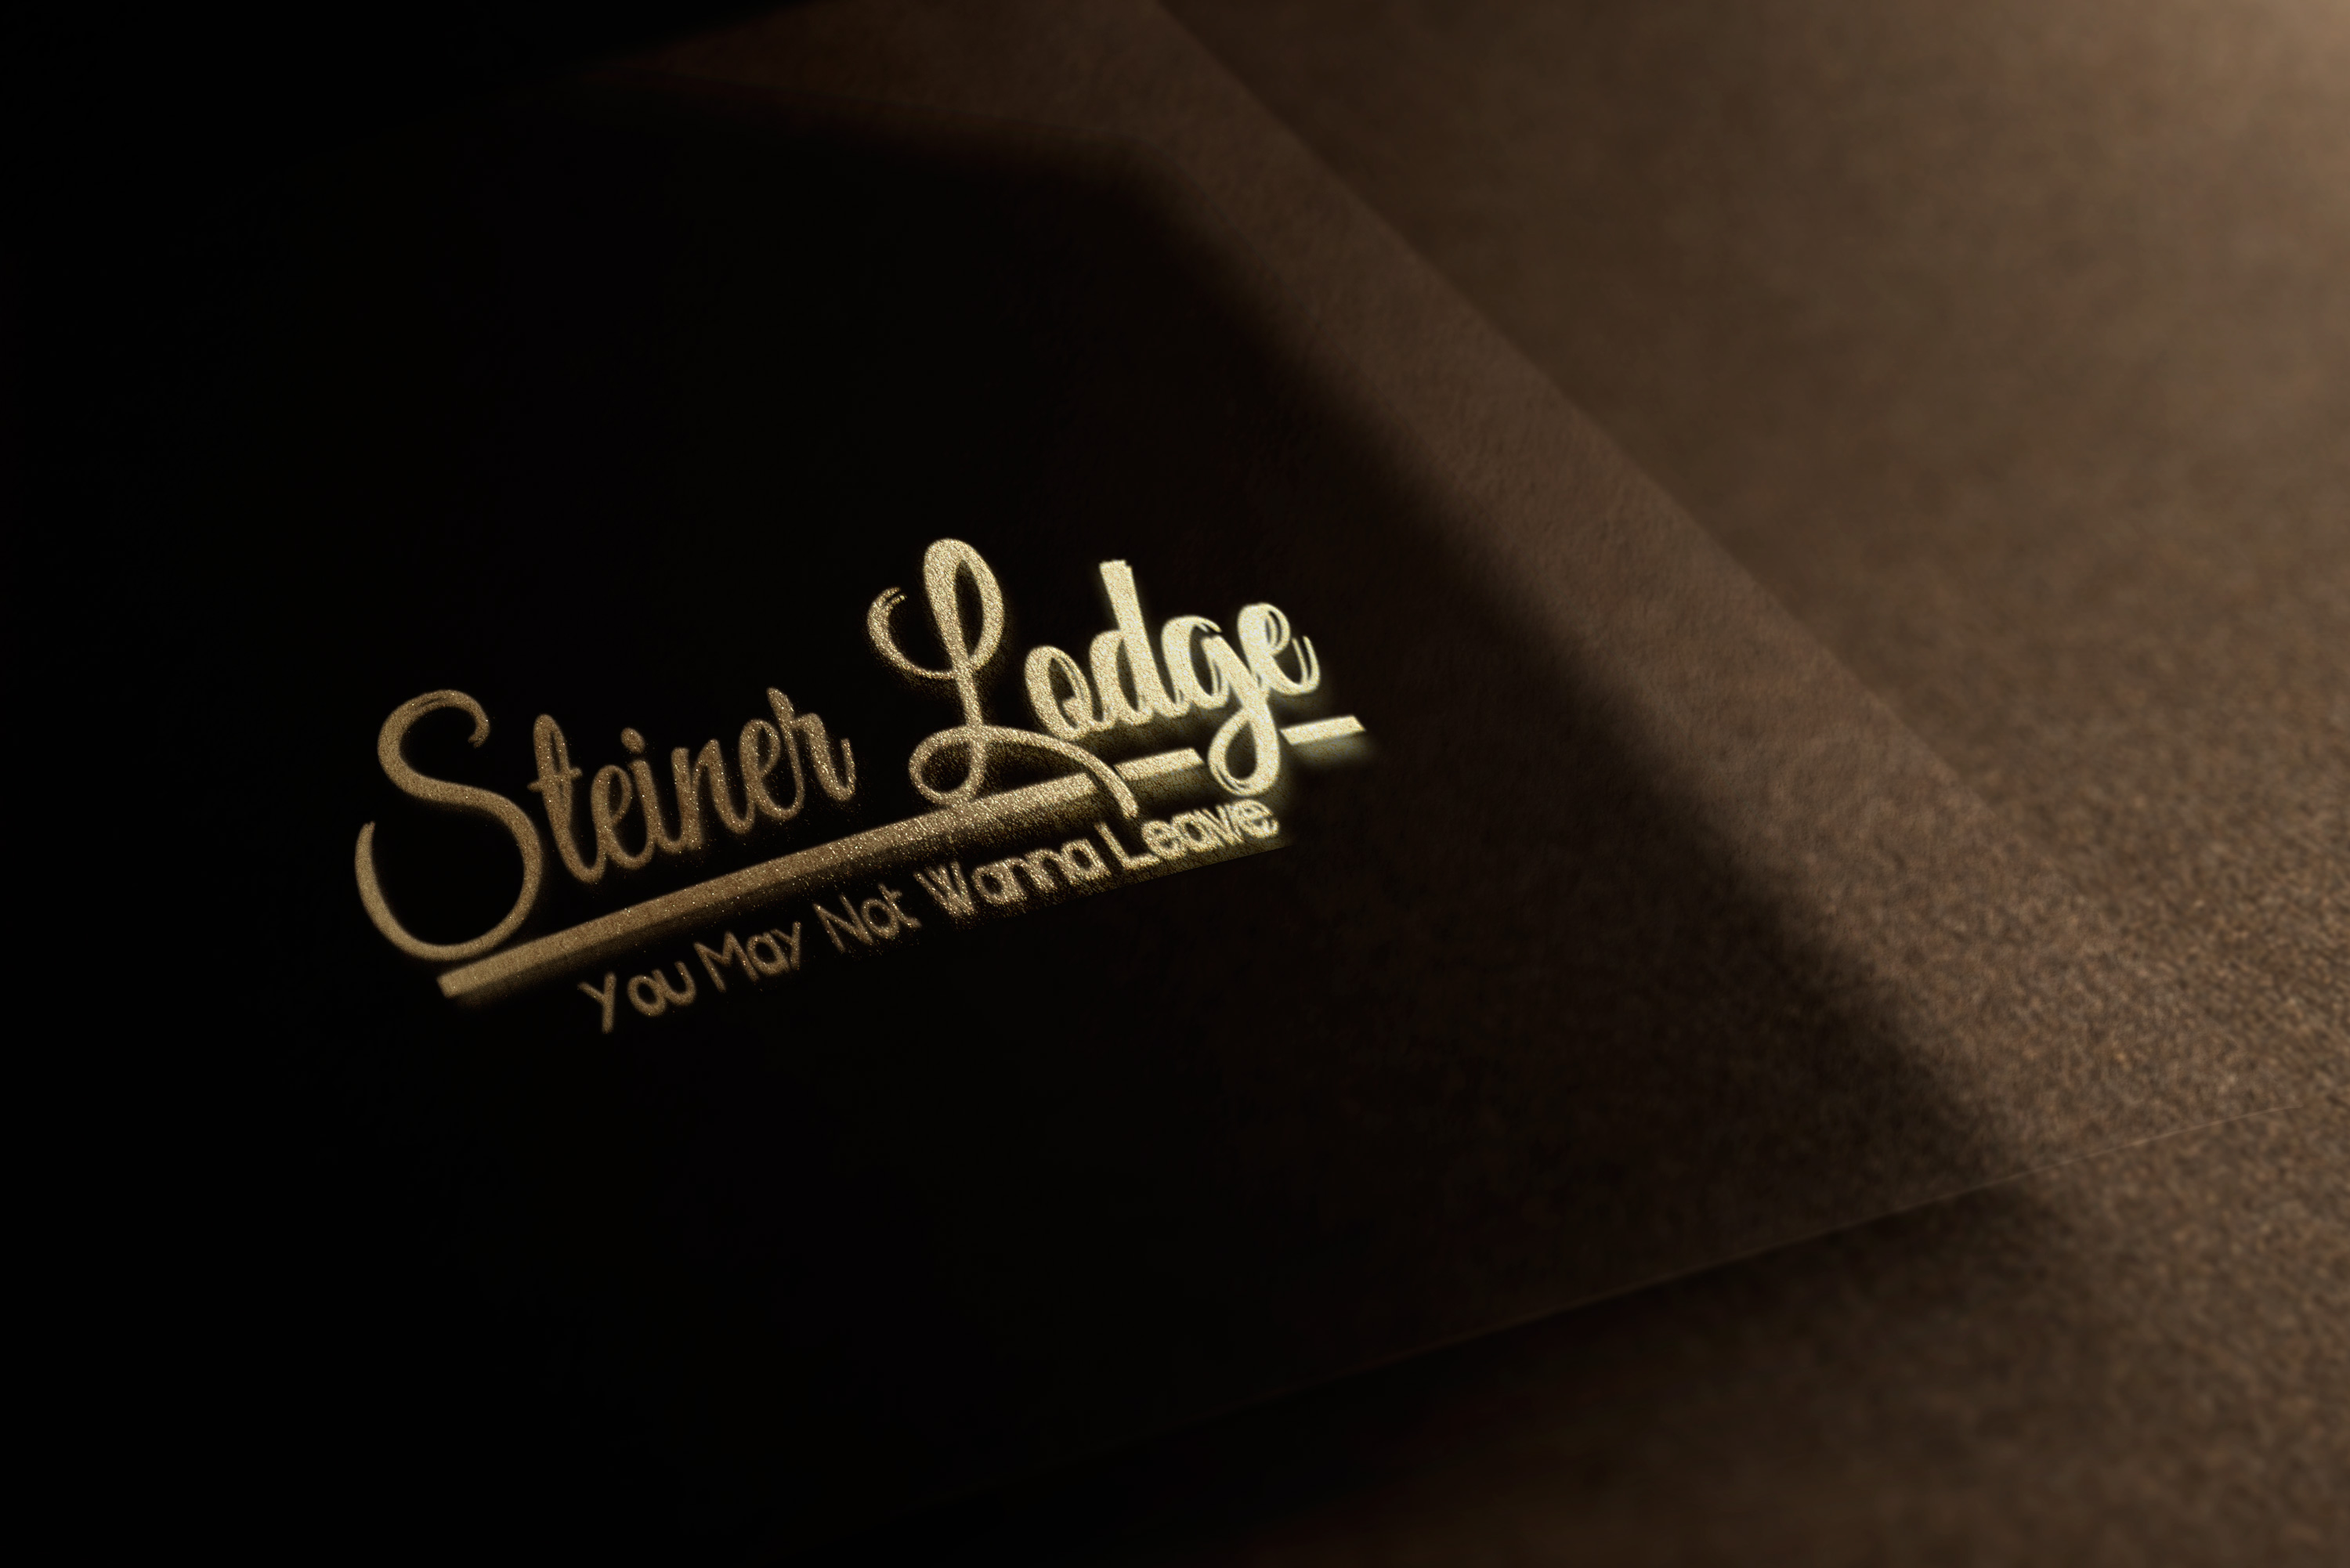 Steiner lodge logo design